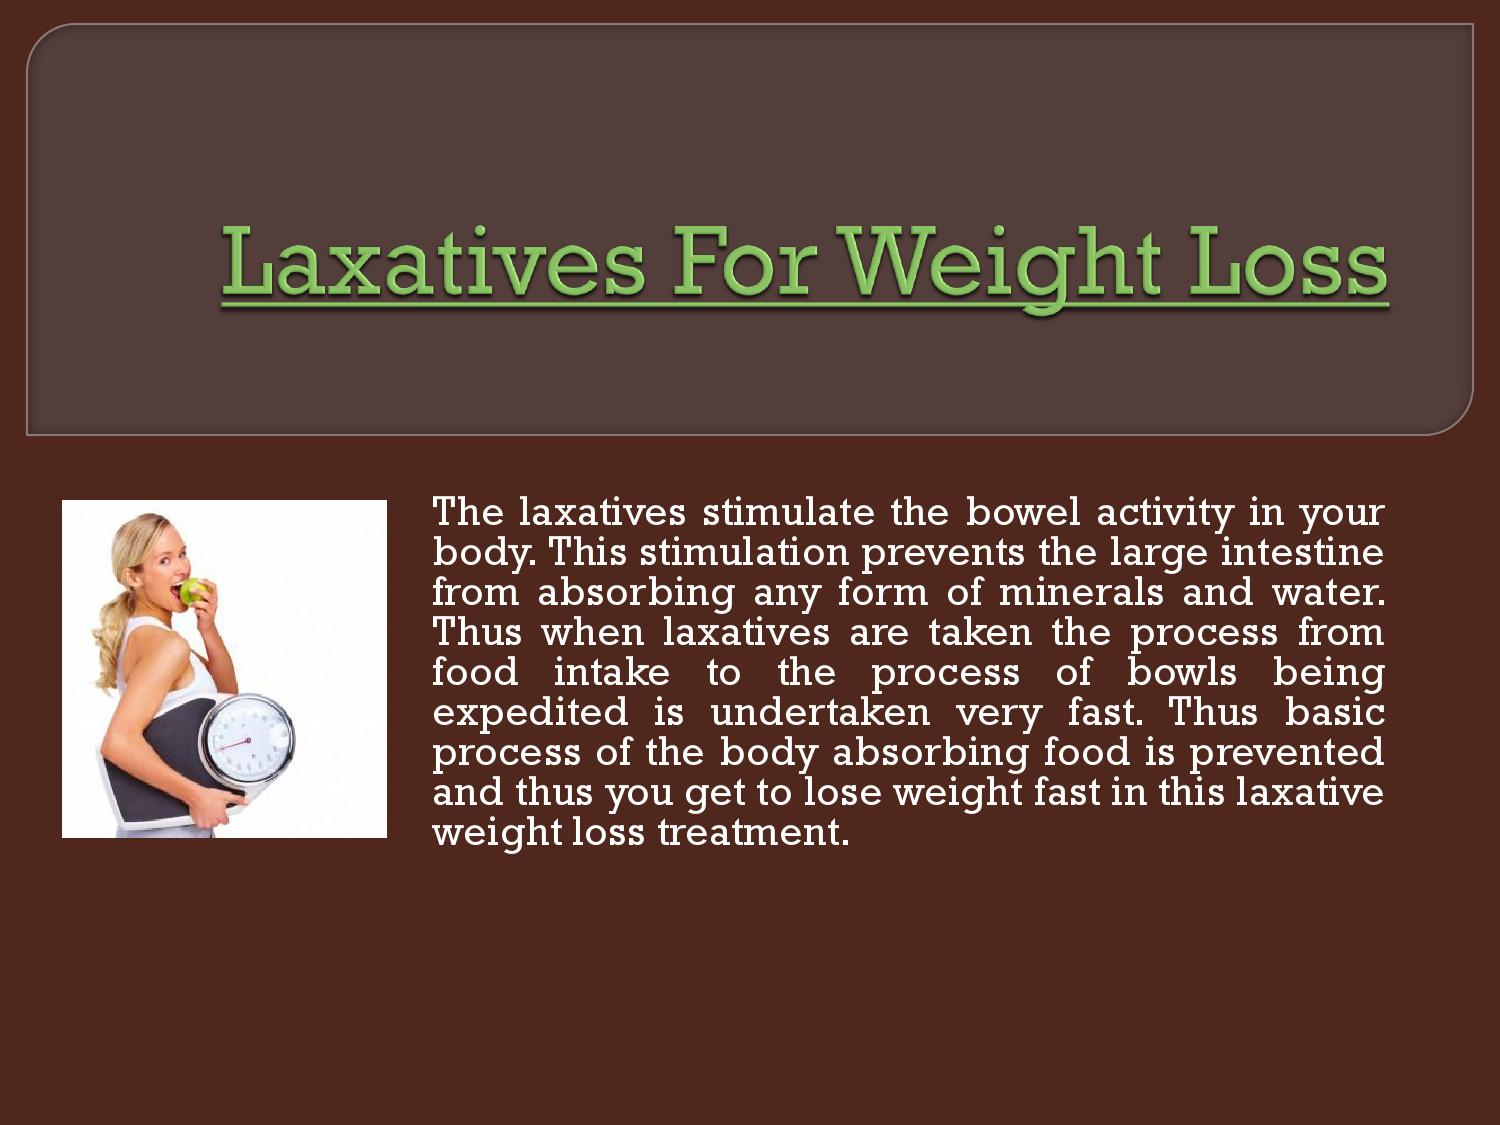 Laxatives for weight loss by Laxatives To Lose Weight - issuu